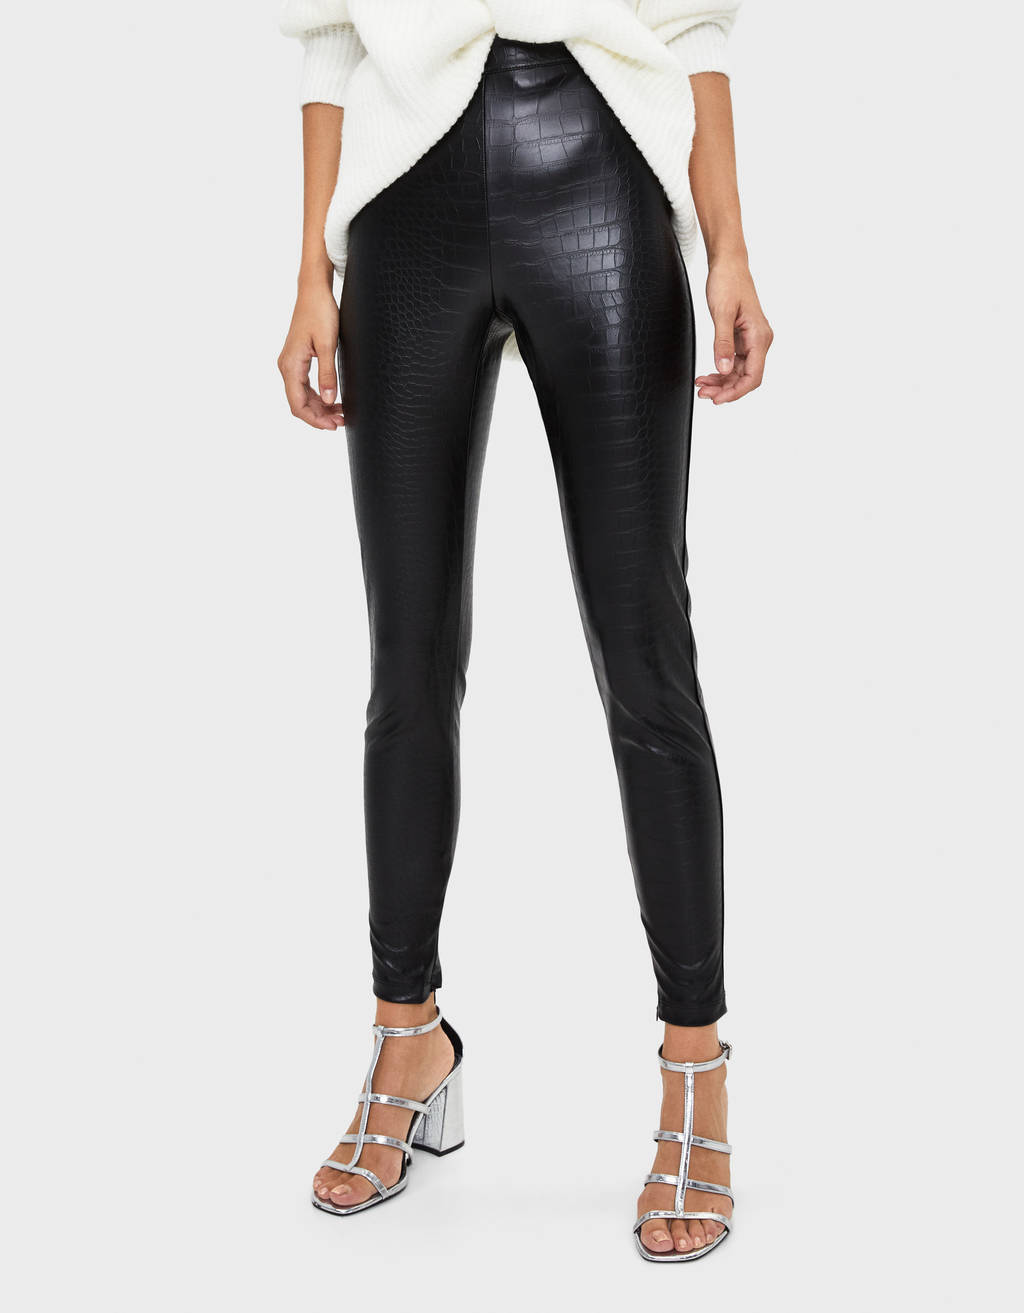 Mock croc faux leather leggings